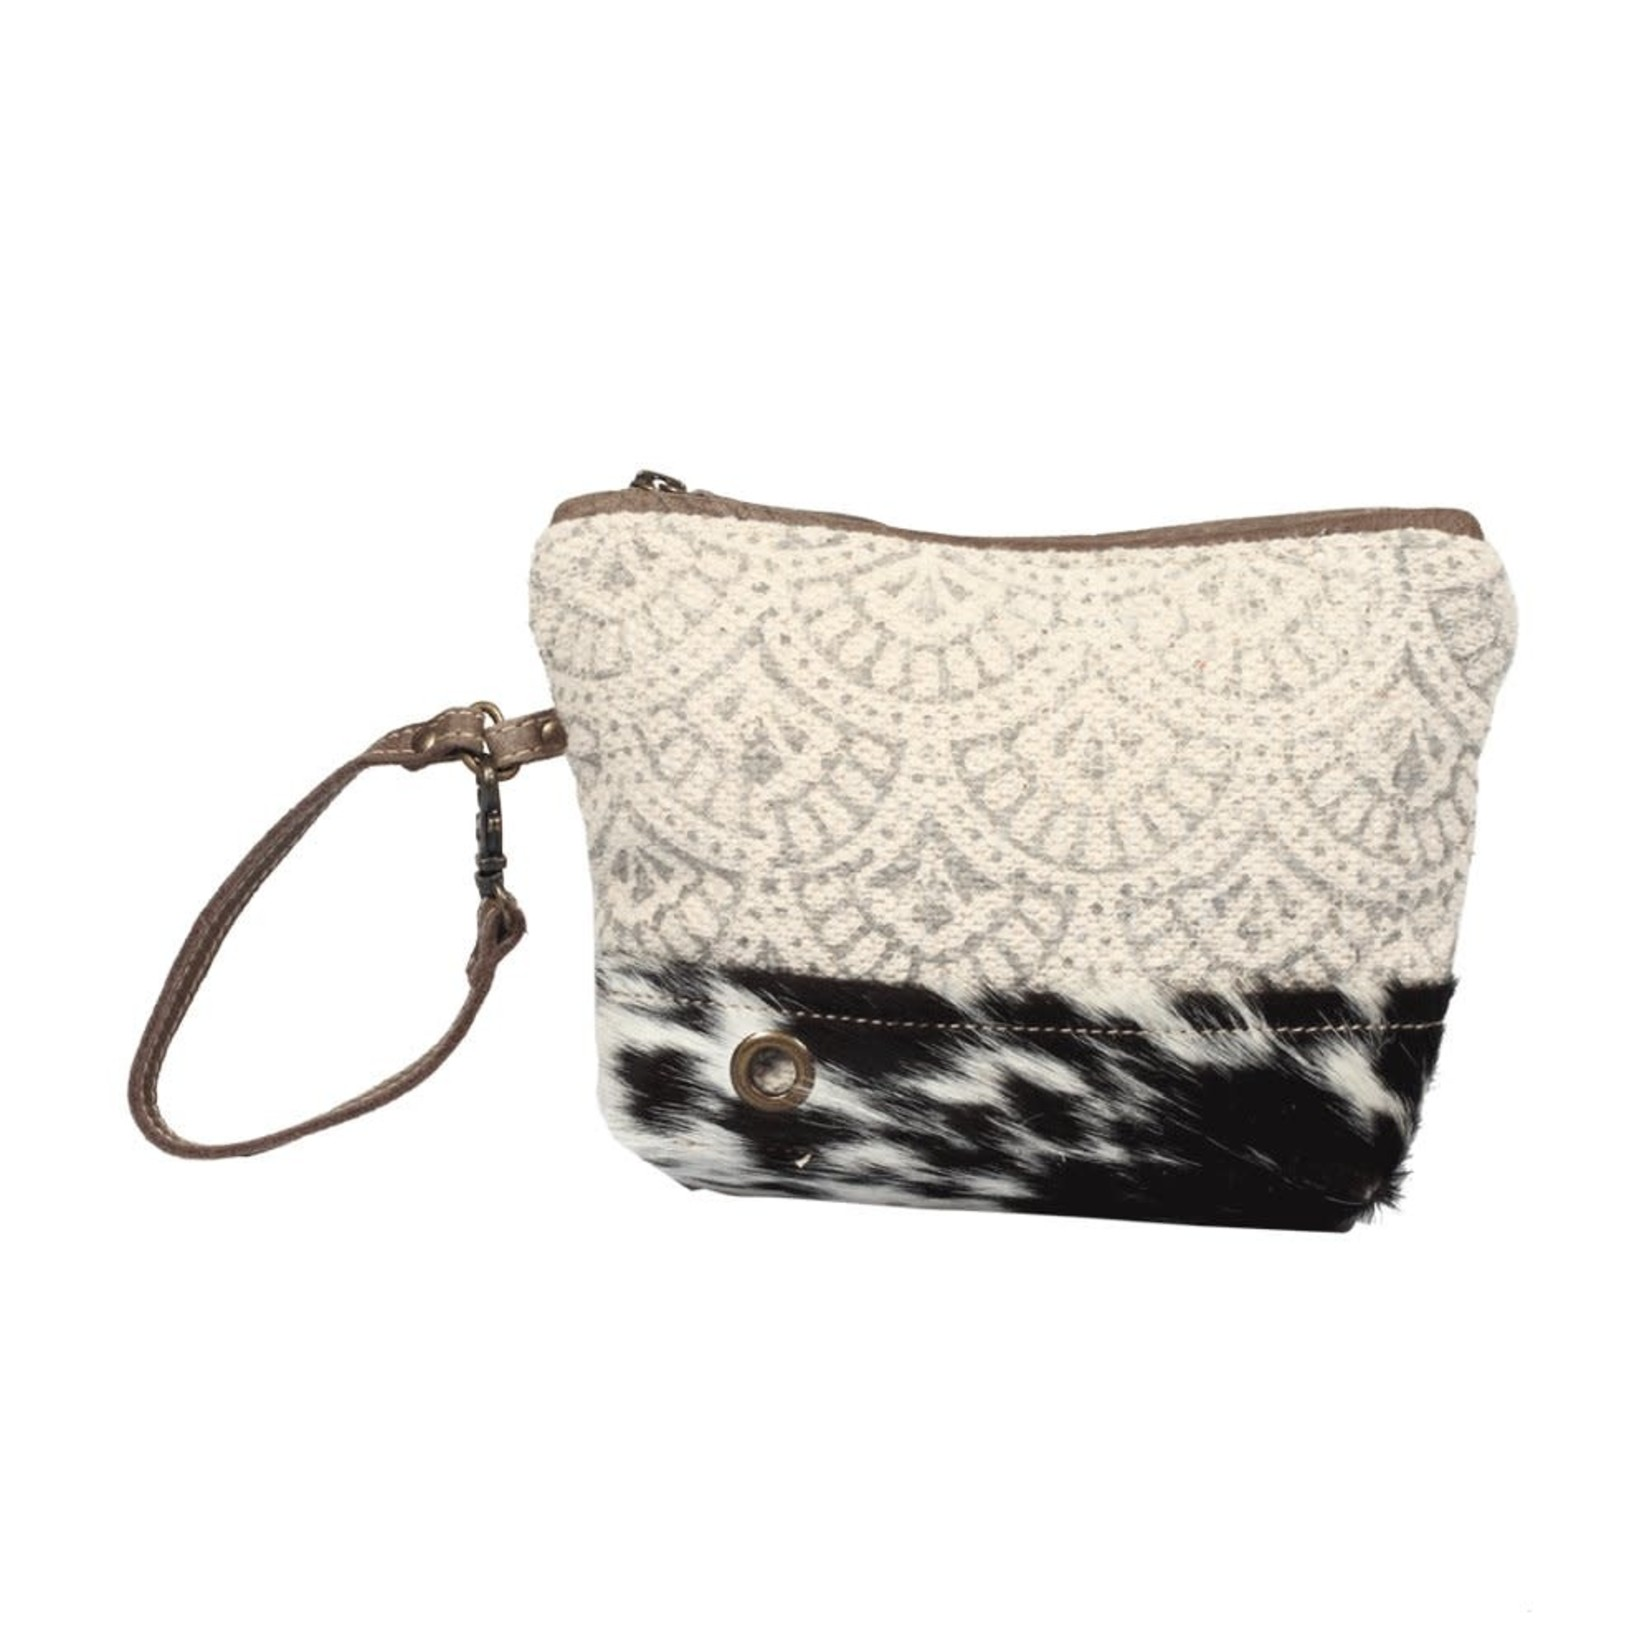 Myra Bags S-1328 Hoop and Hairon Pouch Wristlet